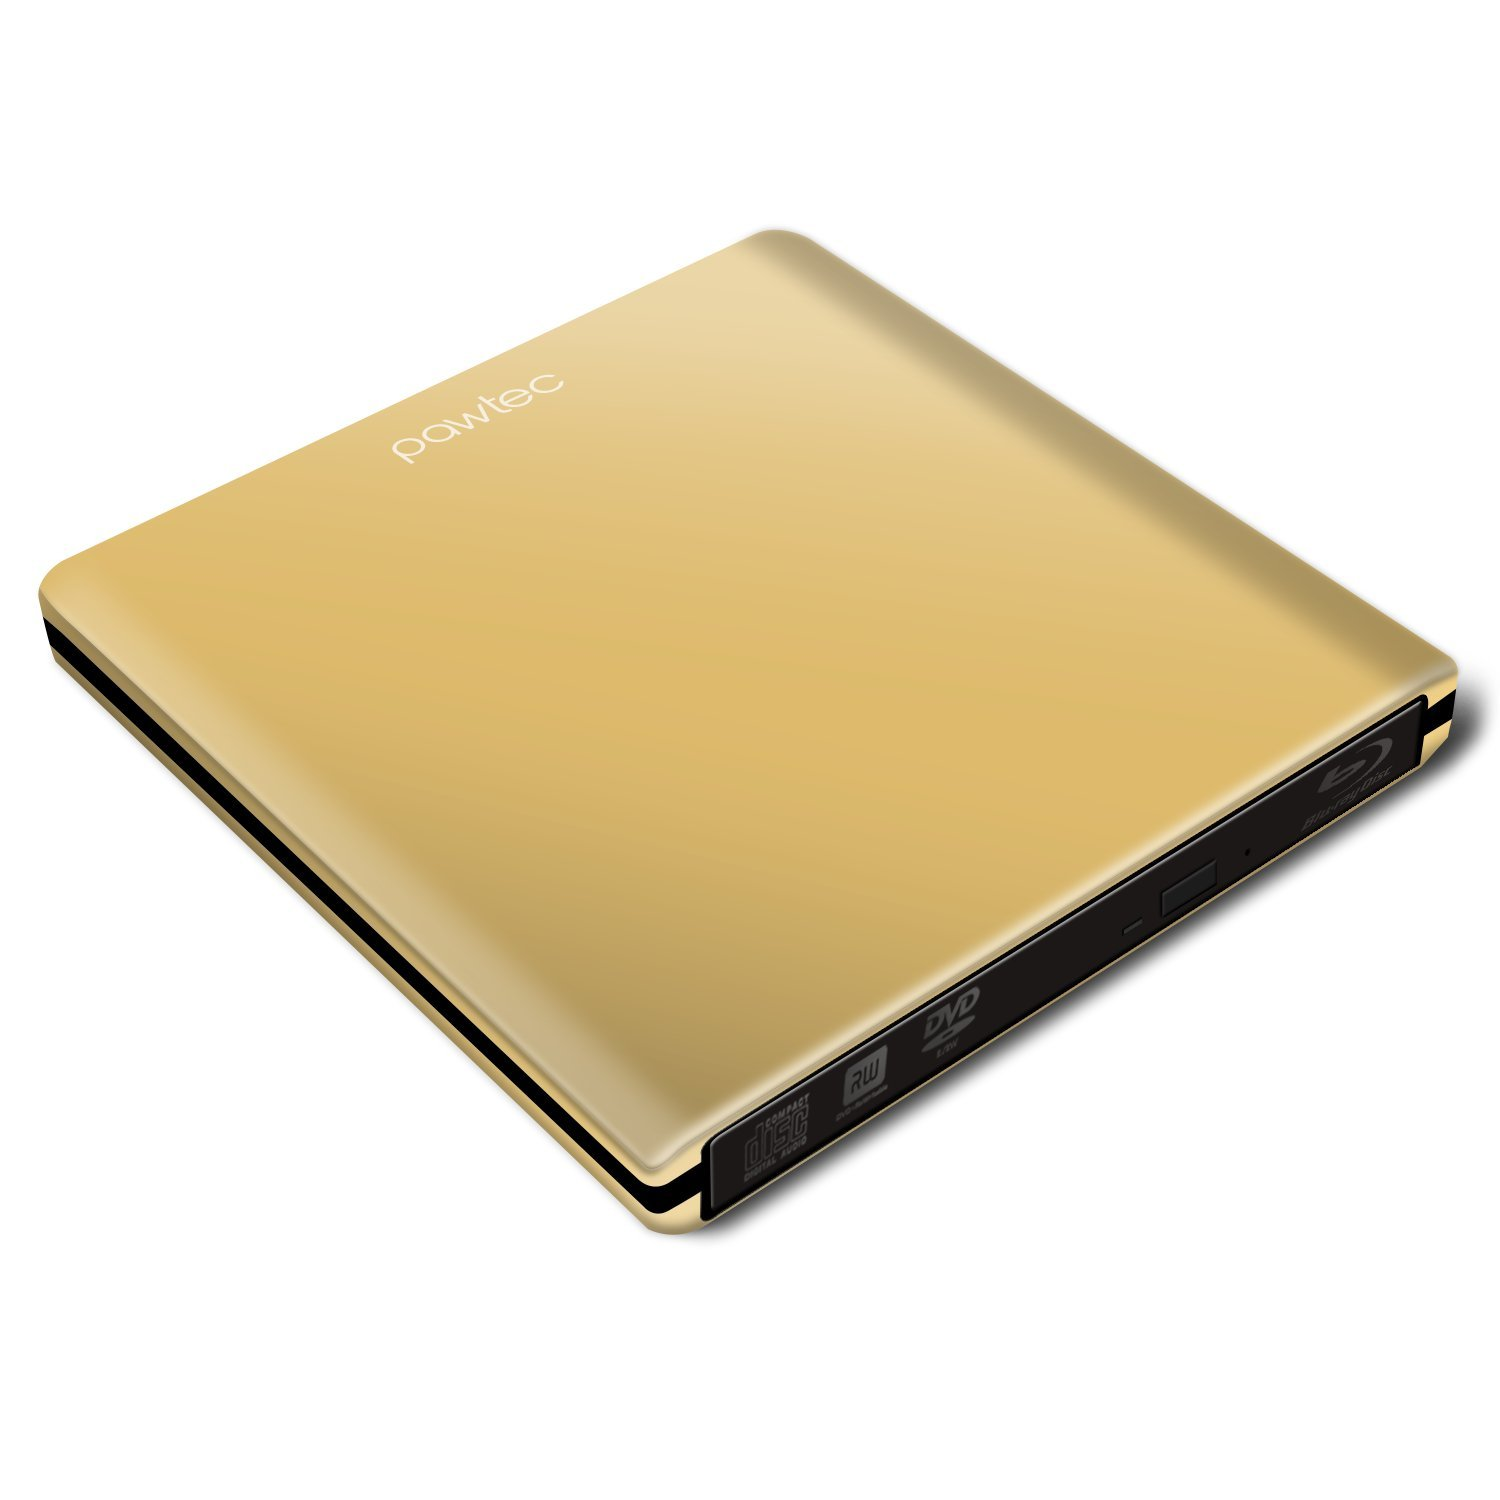 Pawtec Luxury Slim External USB 3.0 Aluminum 6X BDXL 3D Blu-Ray Writer / Burner - Gold Edition